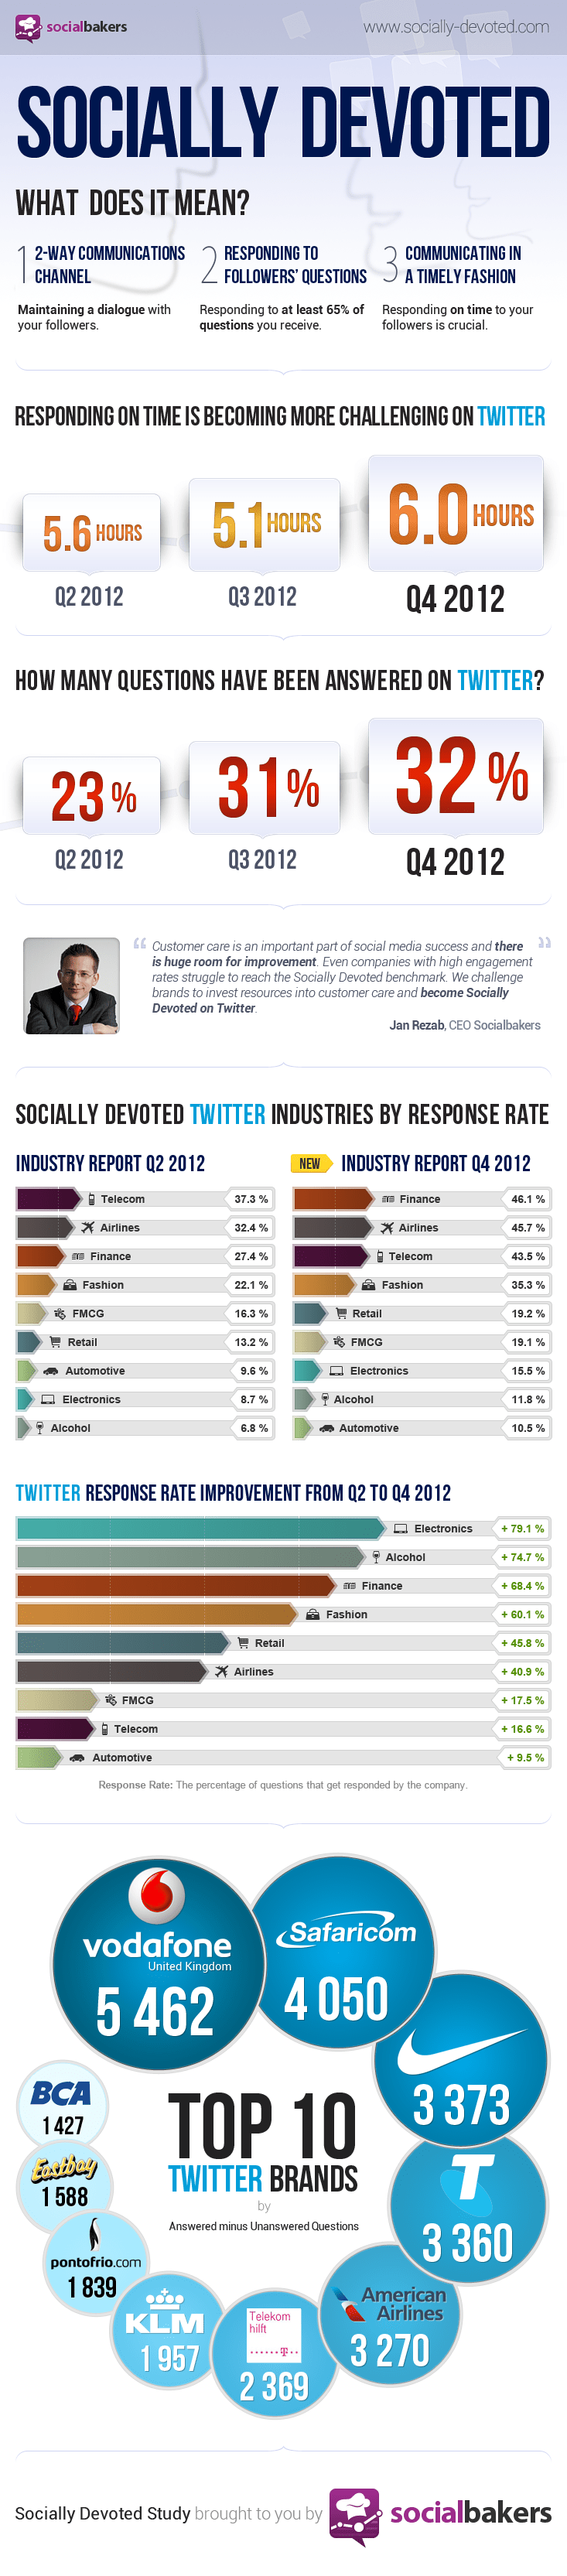 The Most Socially Devoted Industries On Twitter